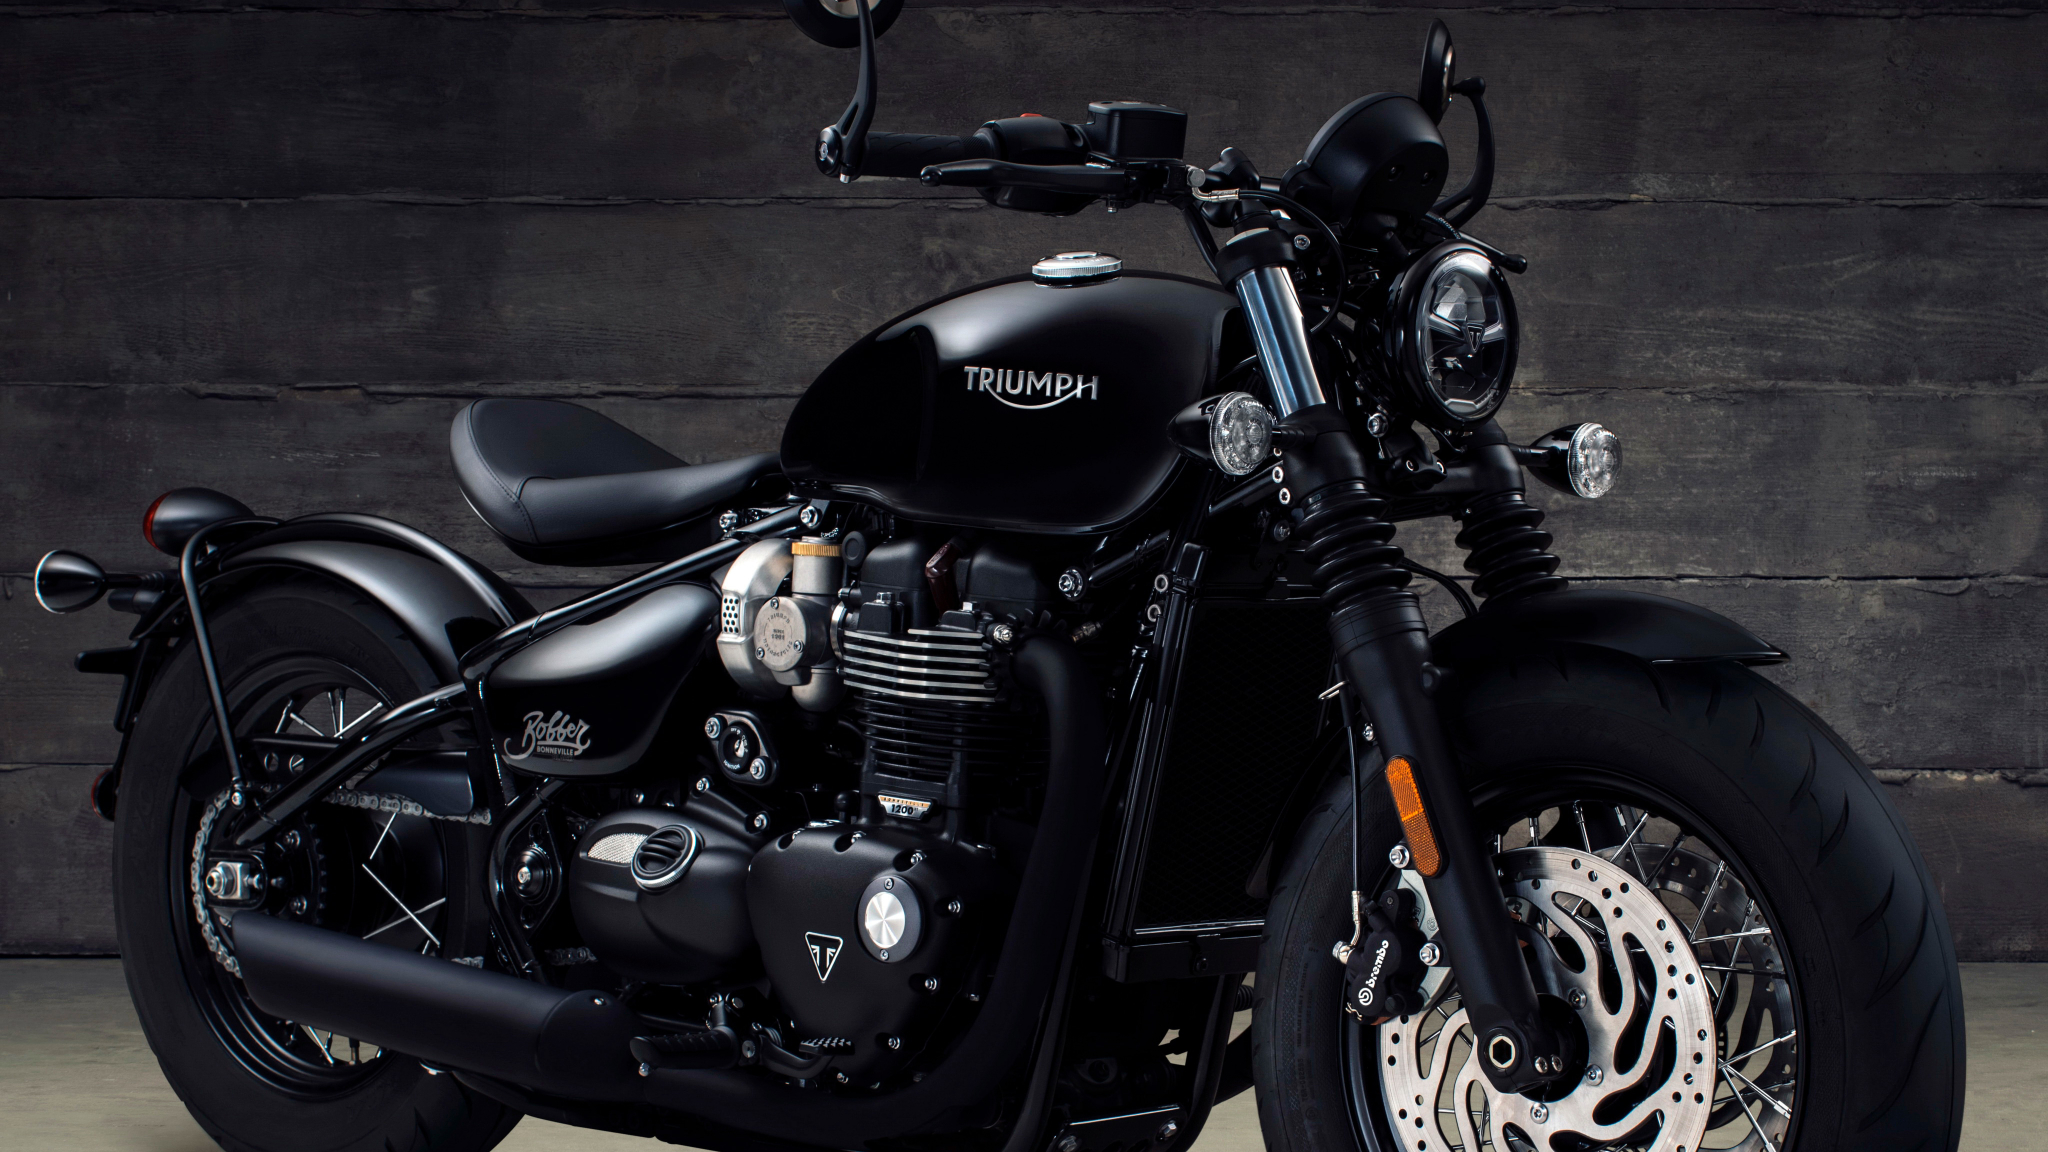 Triumph Bonneville Bobber Black 2017, HD 4K Wallpaper